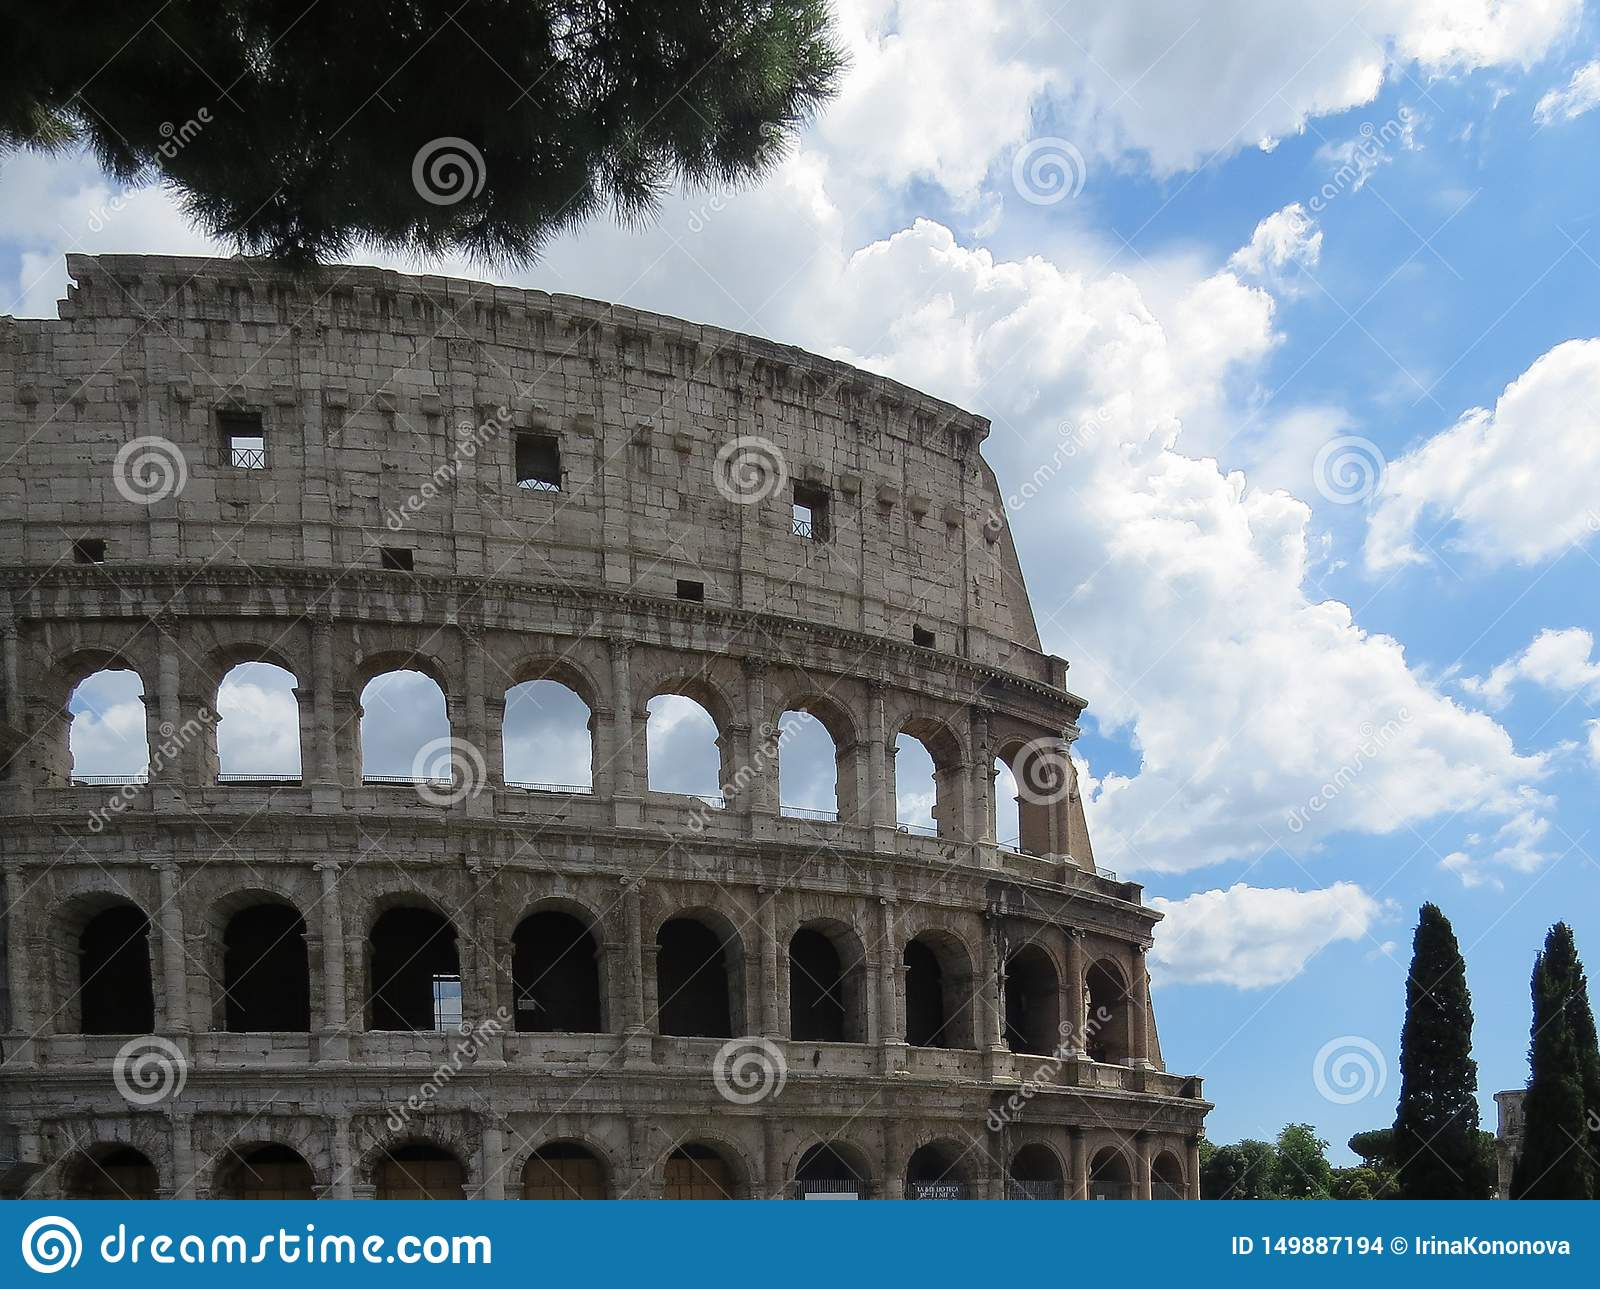 Detailed view of the exterior wall of the Colosseum in Rome against a blue cloudy sky